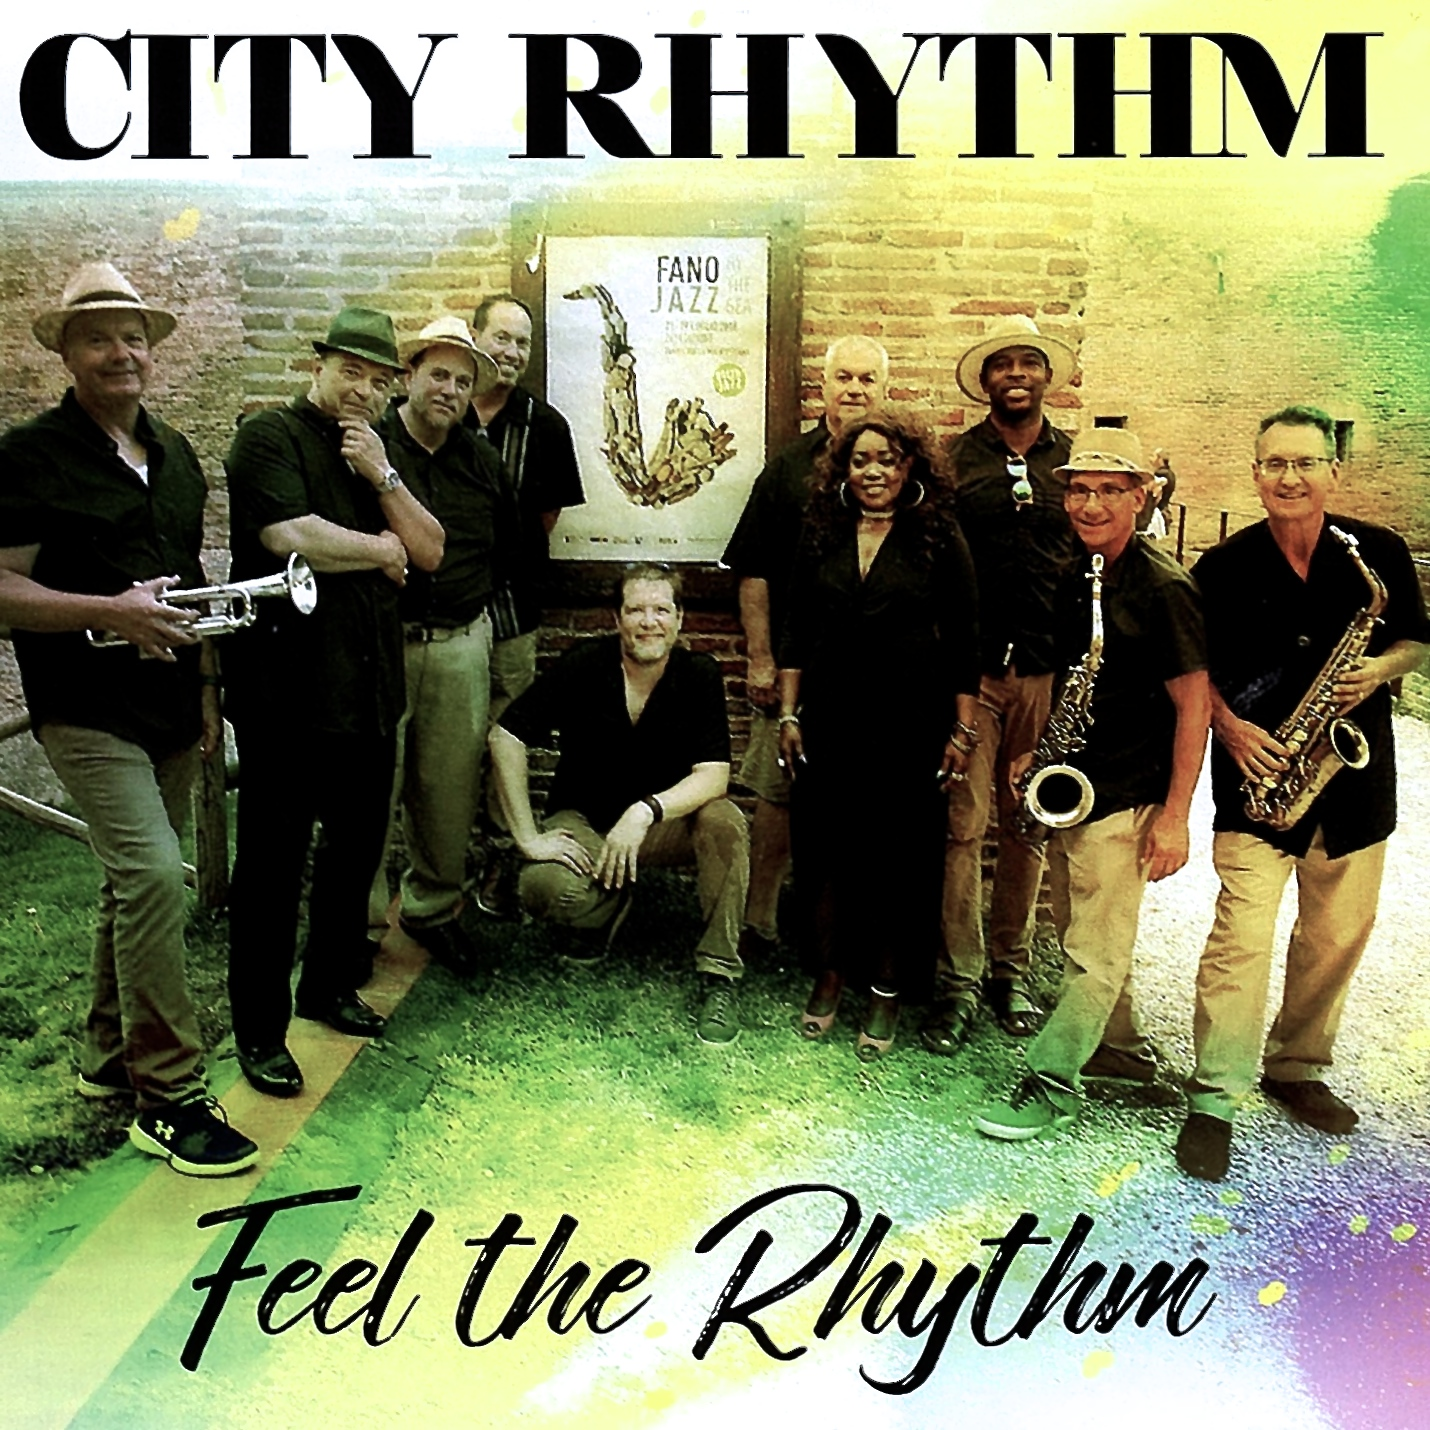 Feel the Rhythm CD.jpg